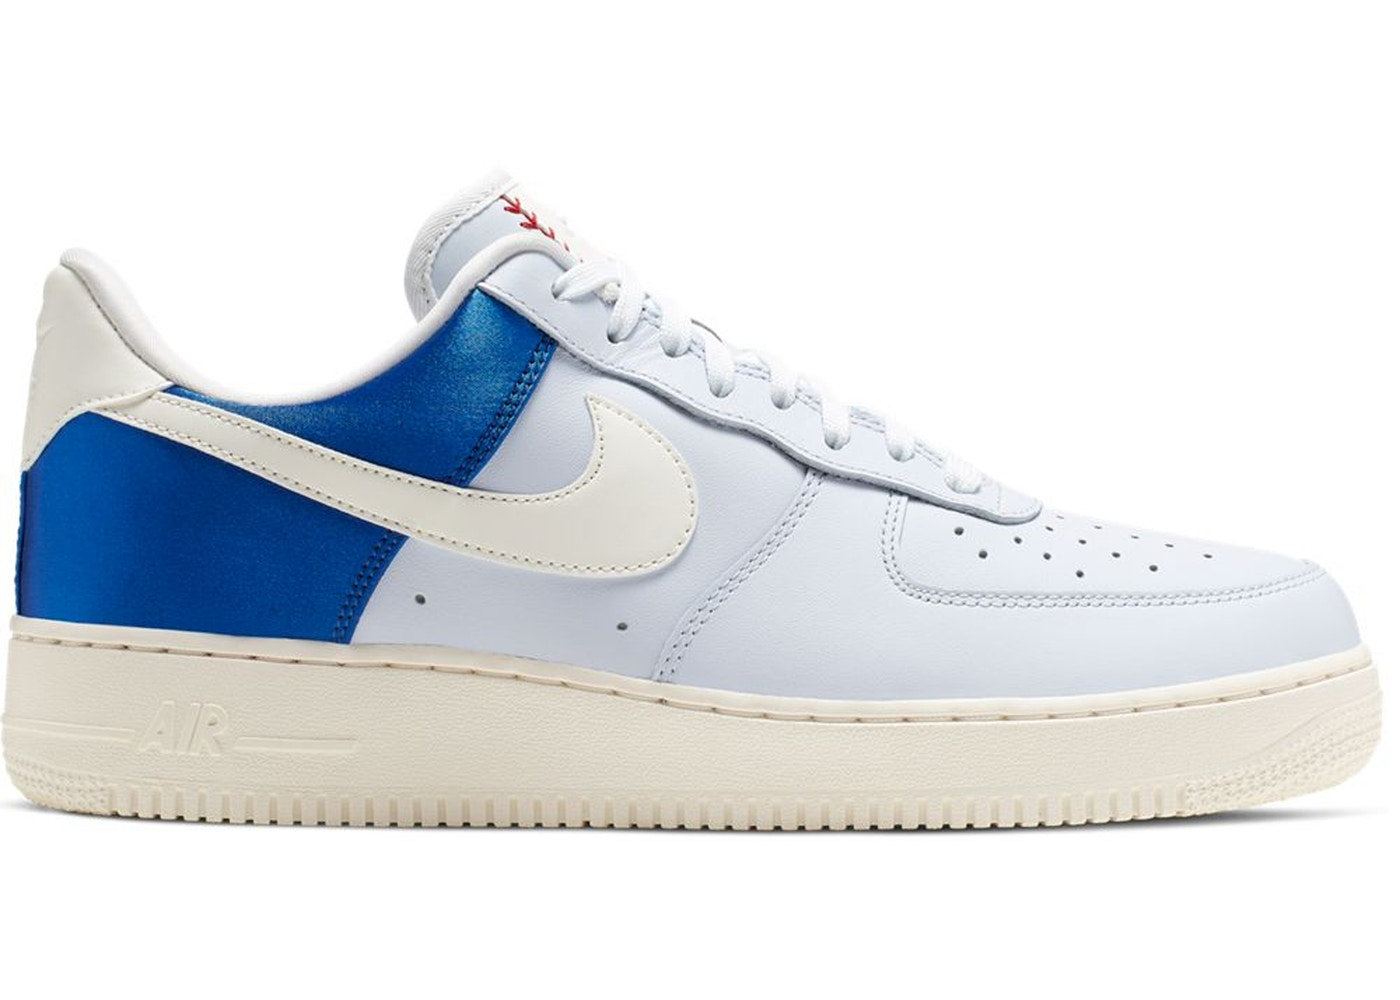 timeless design df22c c14d6 Buy Nike Air Force 1 Shoes   Deadstock Sneakers